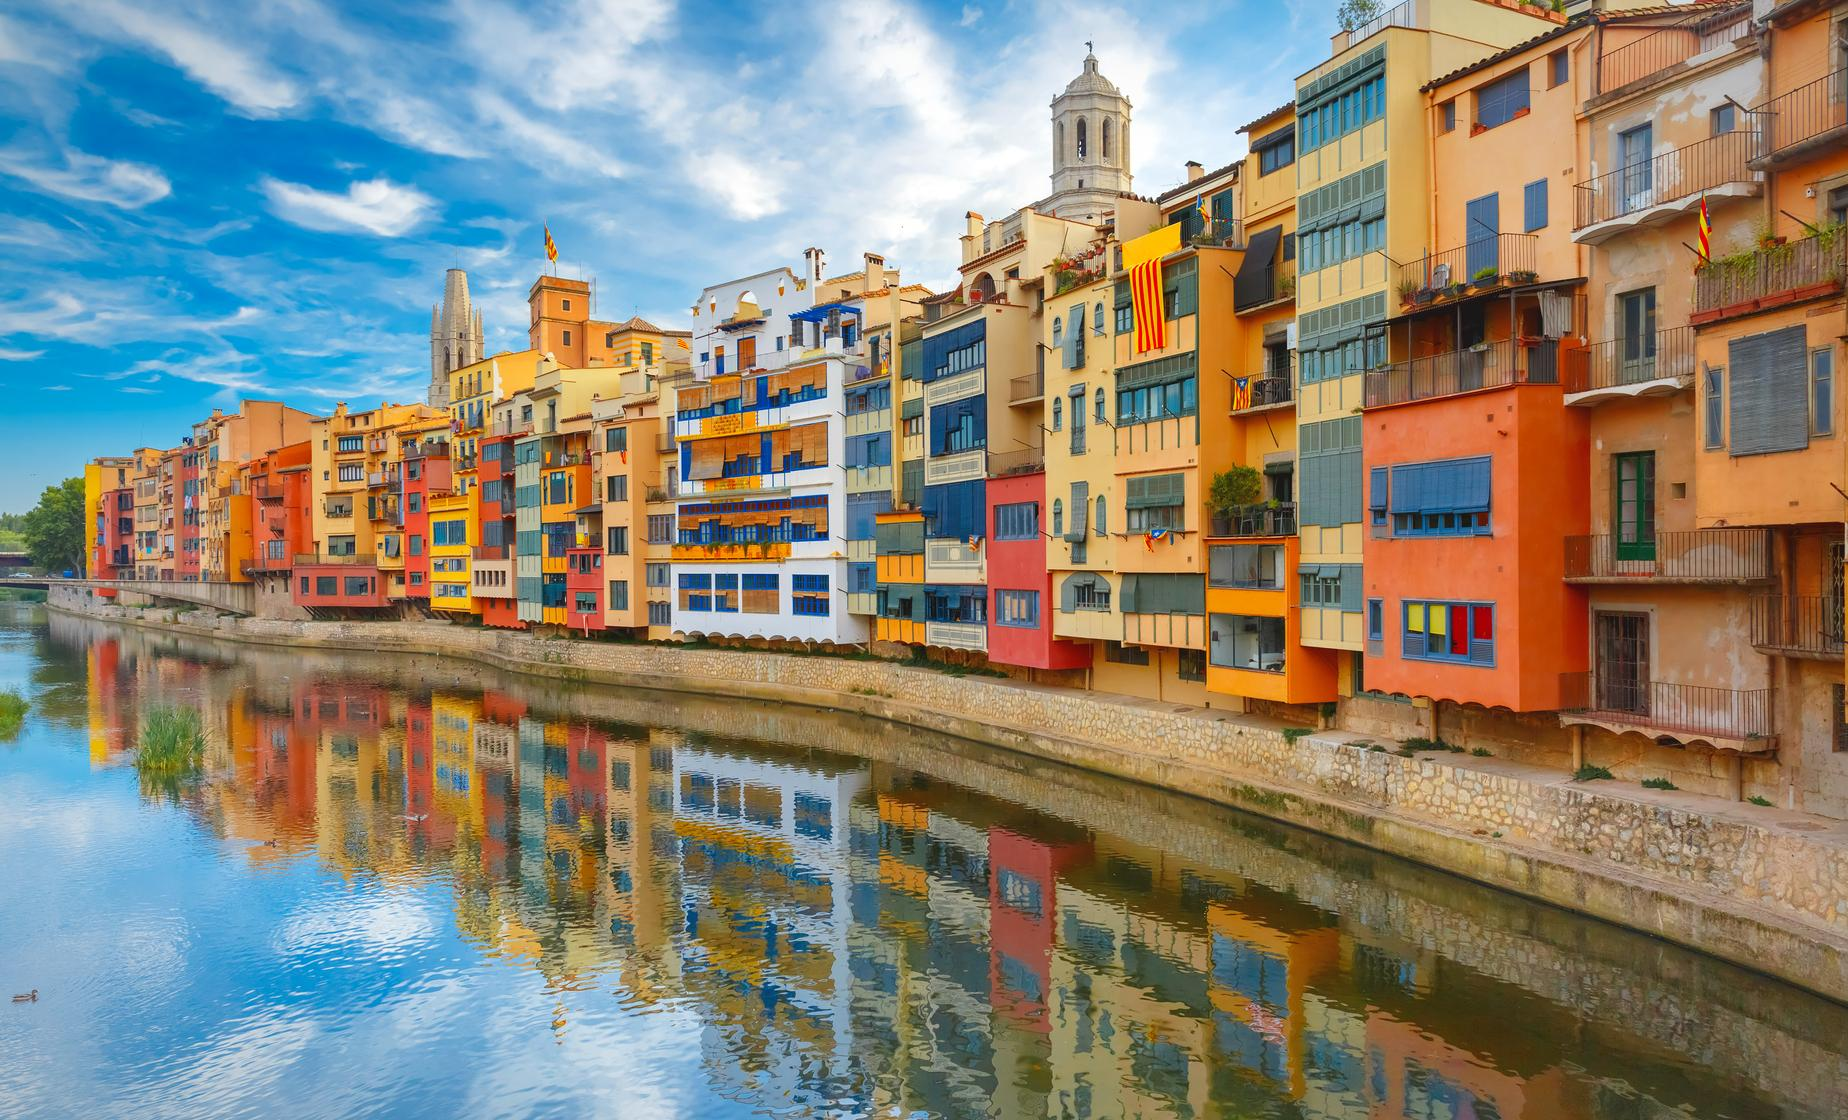 Exclusive Girona and Costa Brava Day Trip from Barcelona